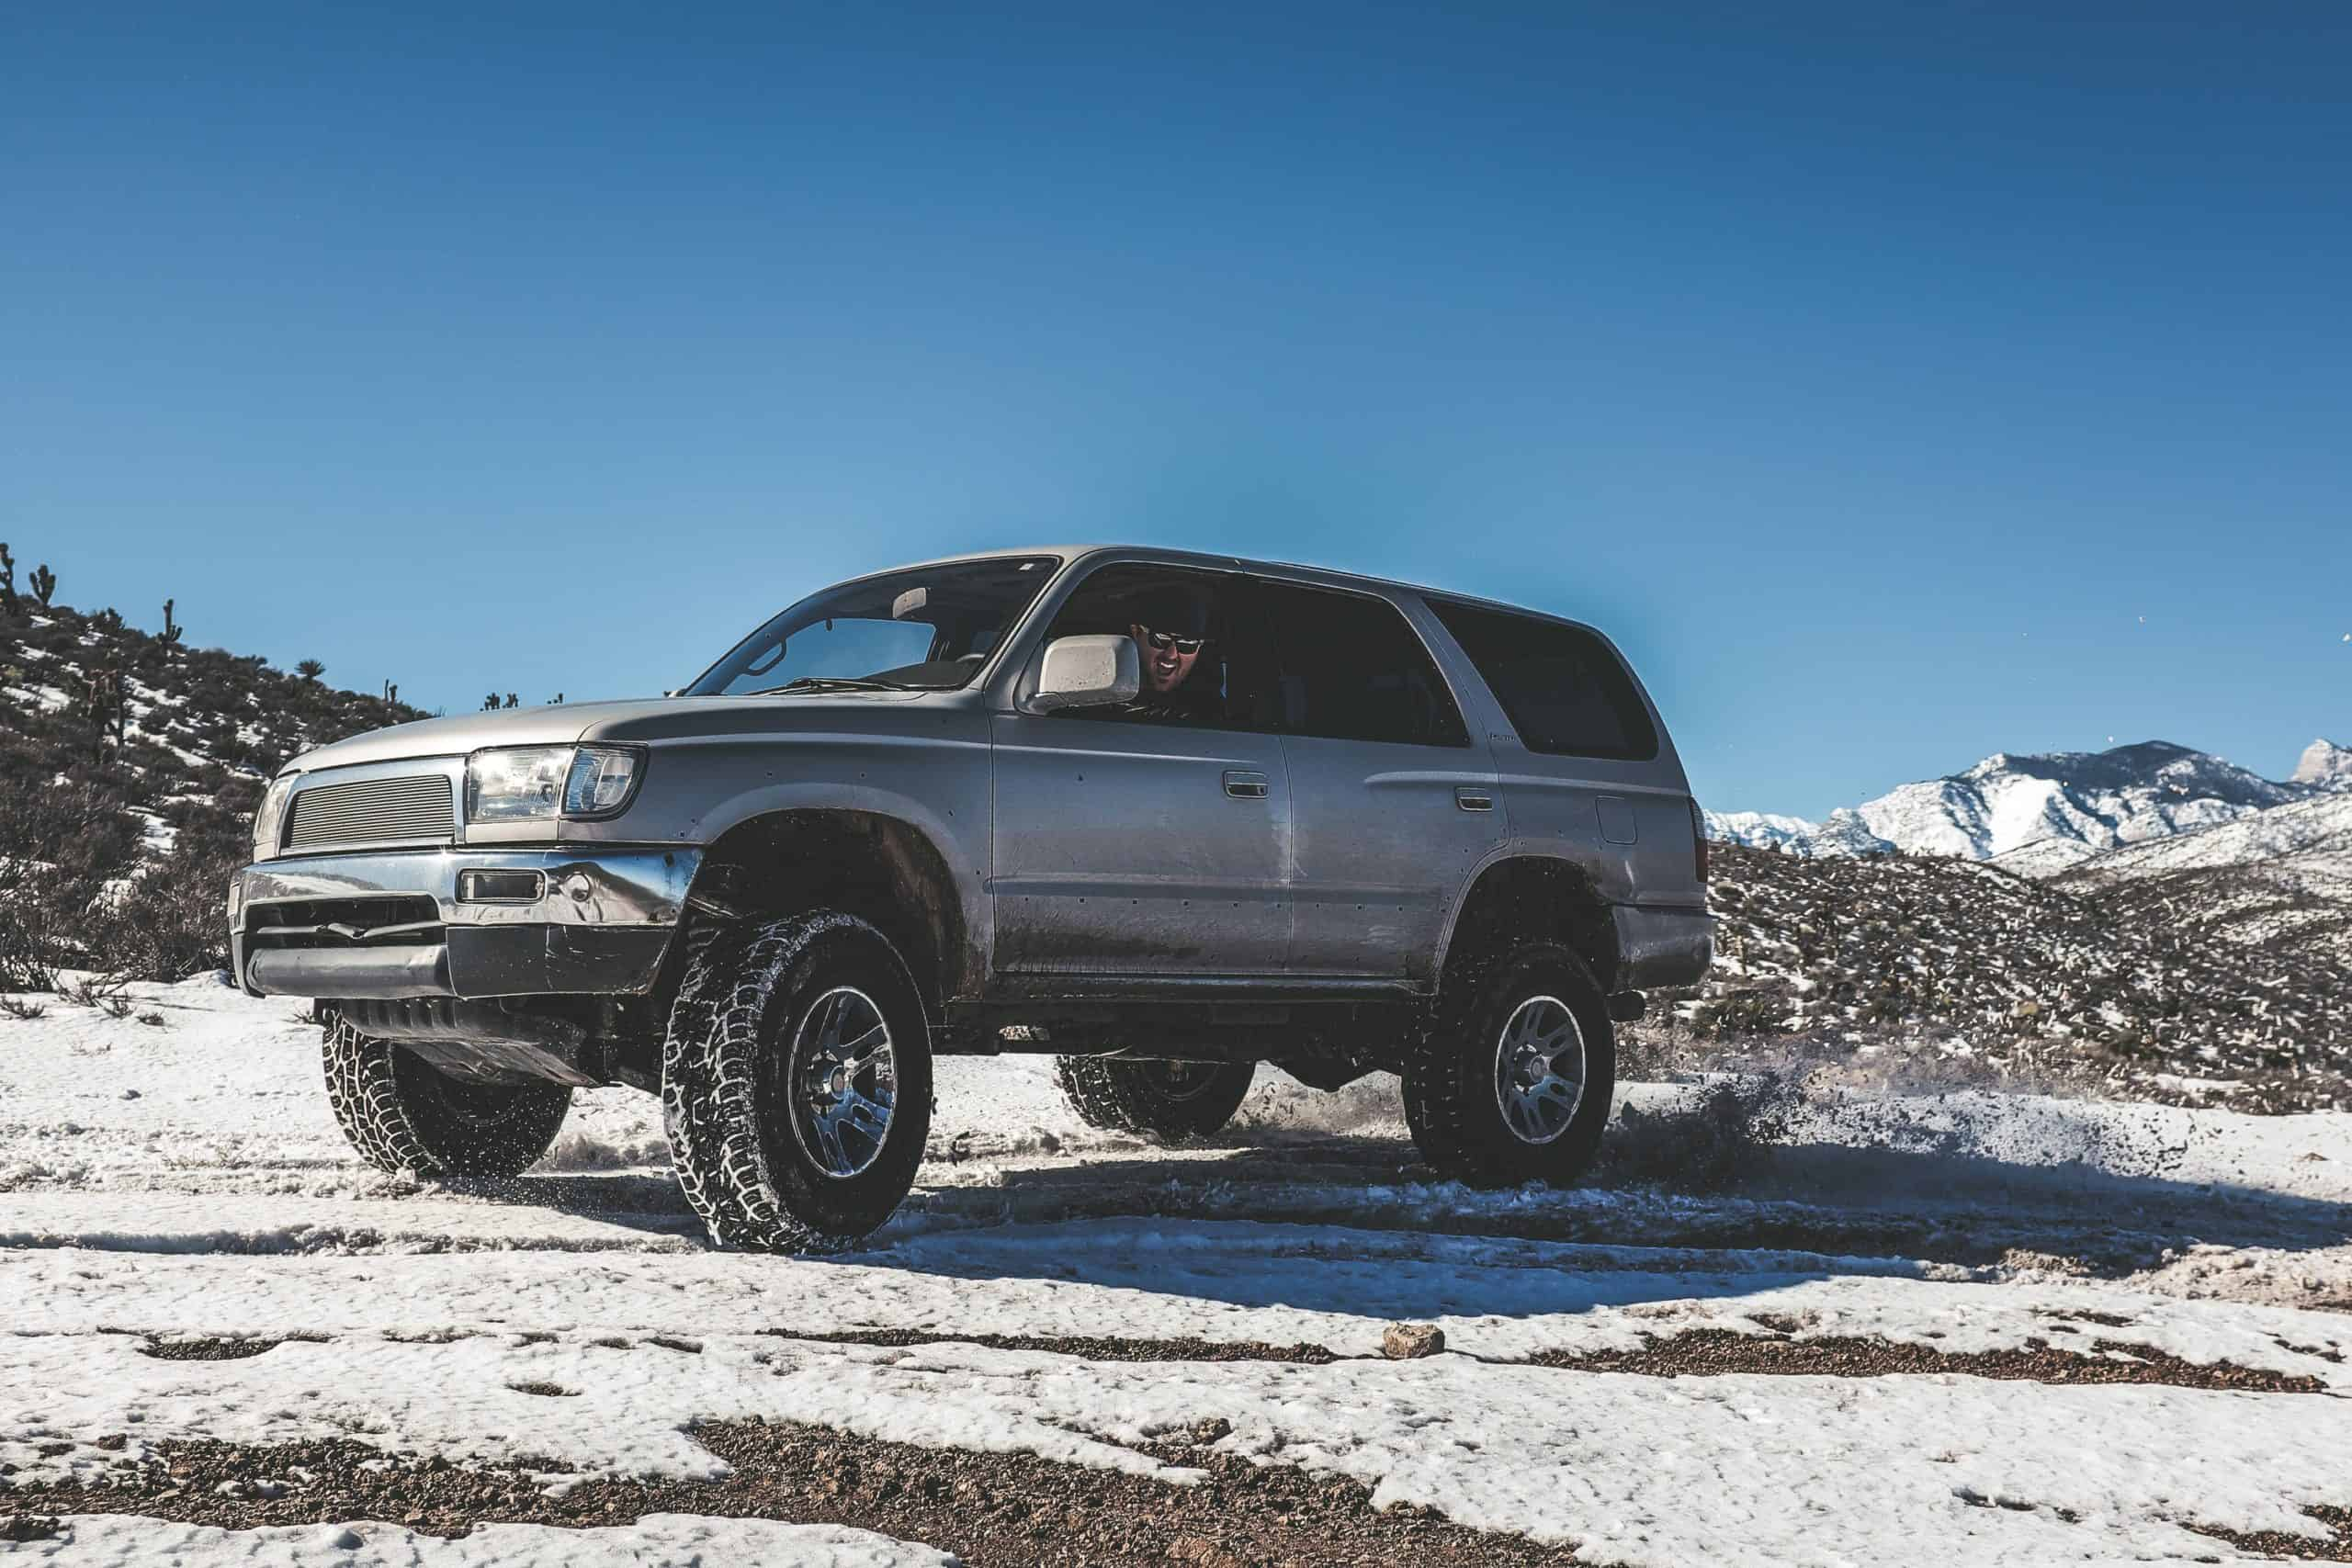 5 Reasons To Own An Off-Road Car- Complete Guide